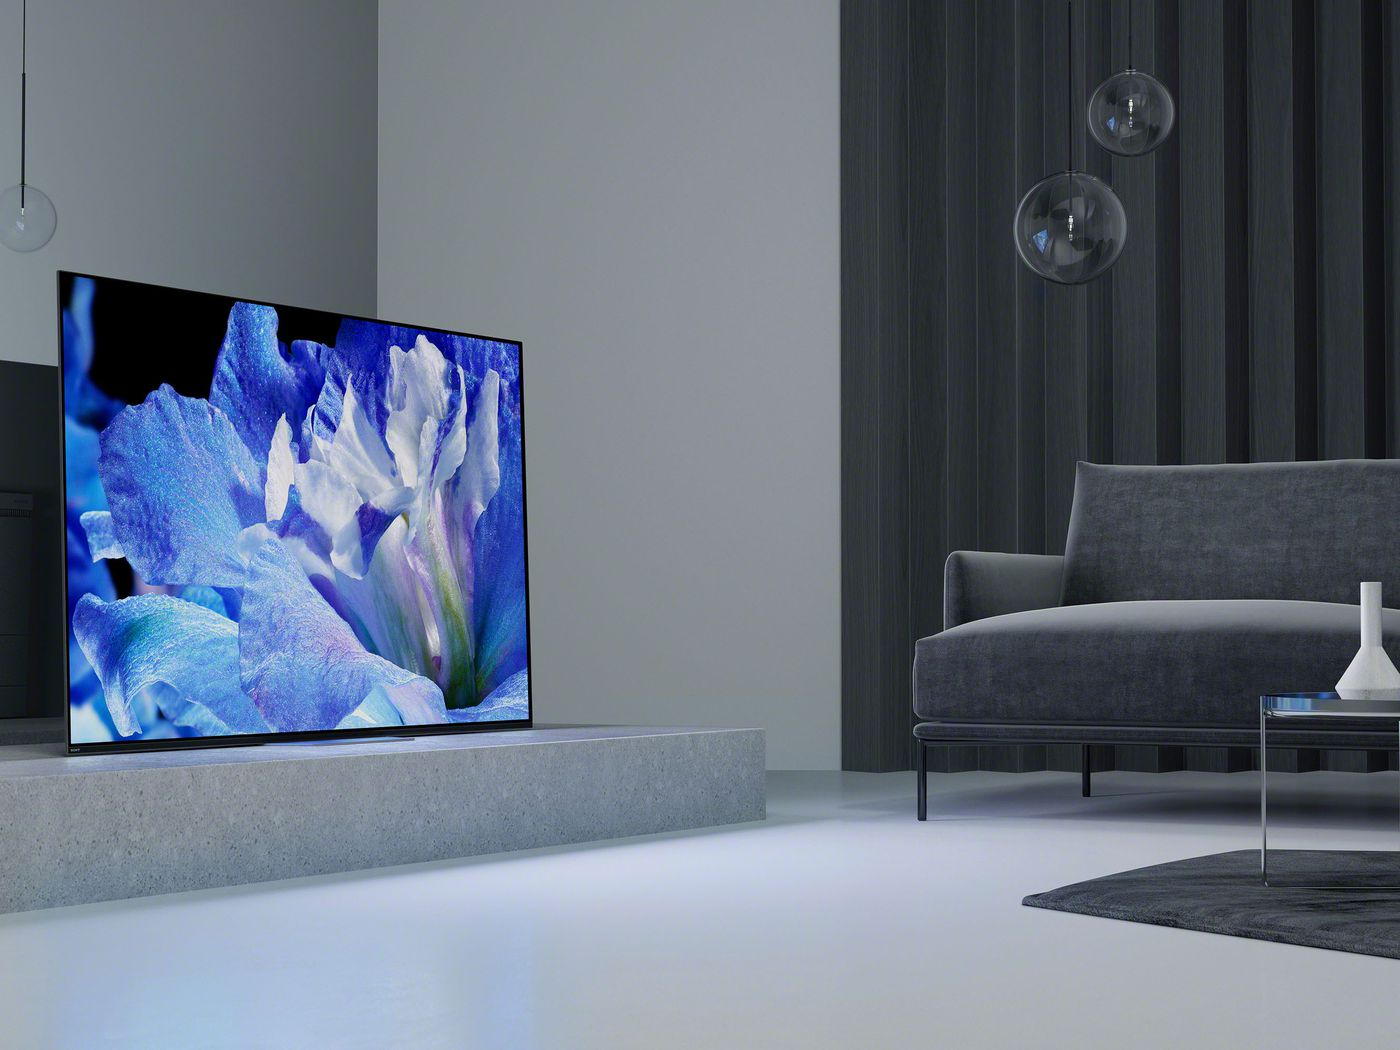 Sony's latest 4K OLED and LCD TVs add Dolby Vision HDR - The Verge